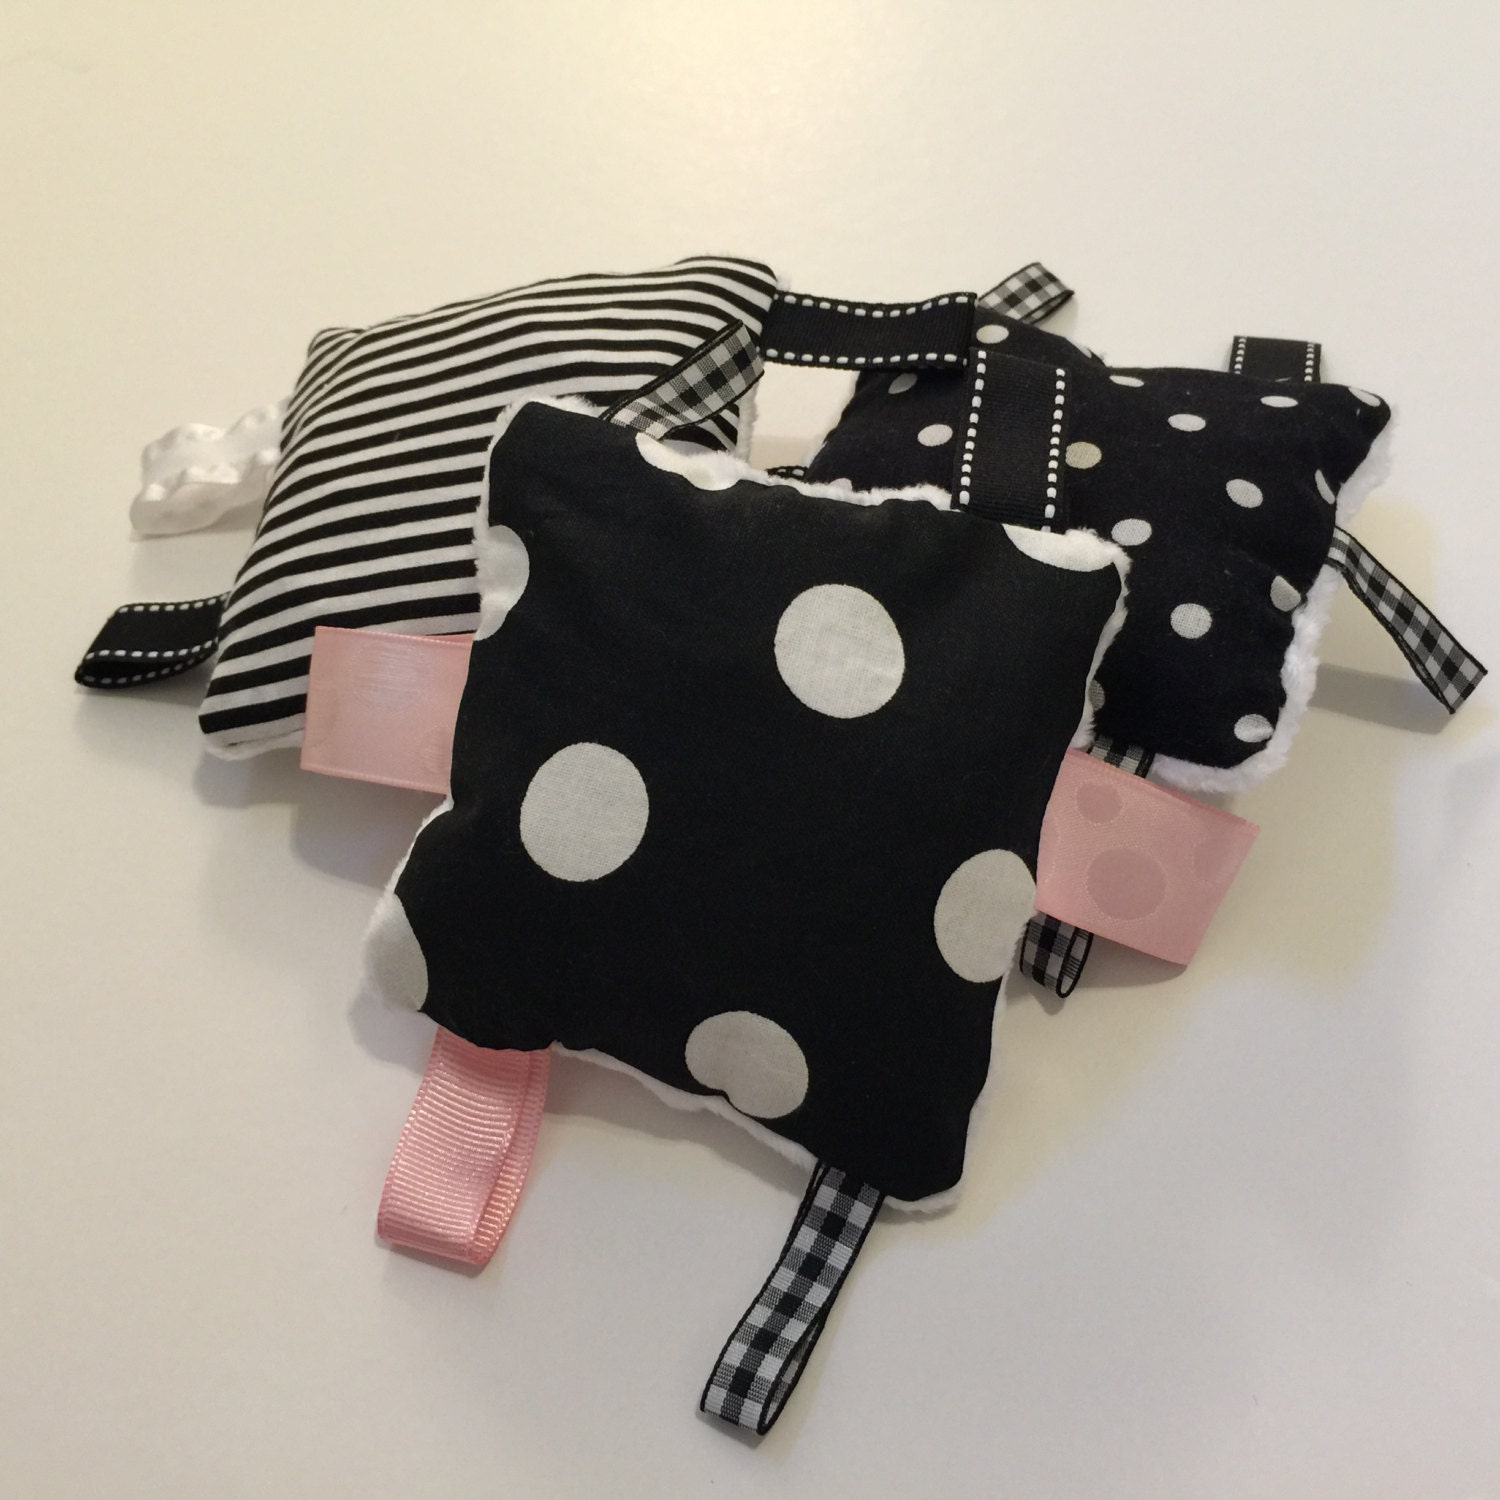 Toddler Toys Black And White : Baby crinkle toy black and white